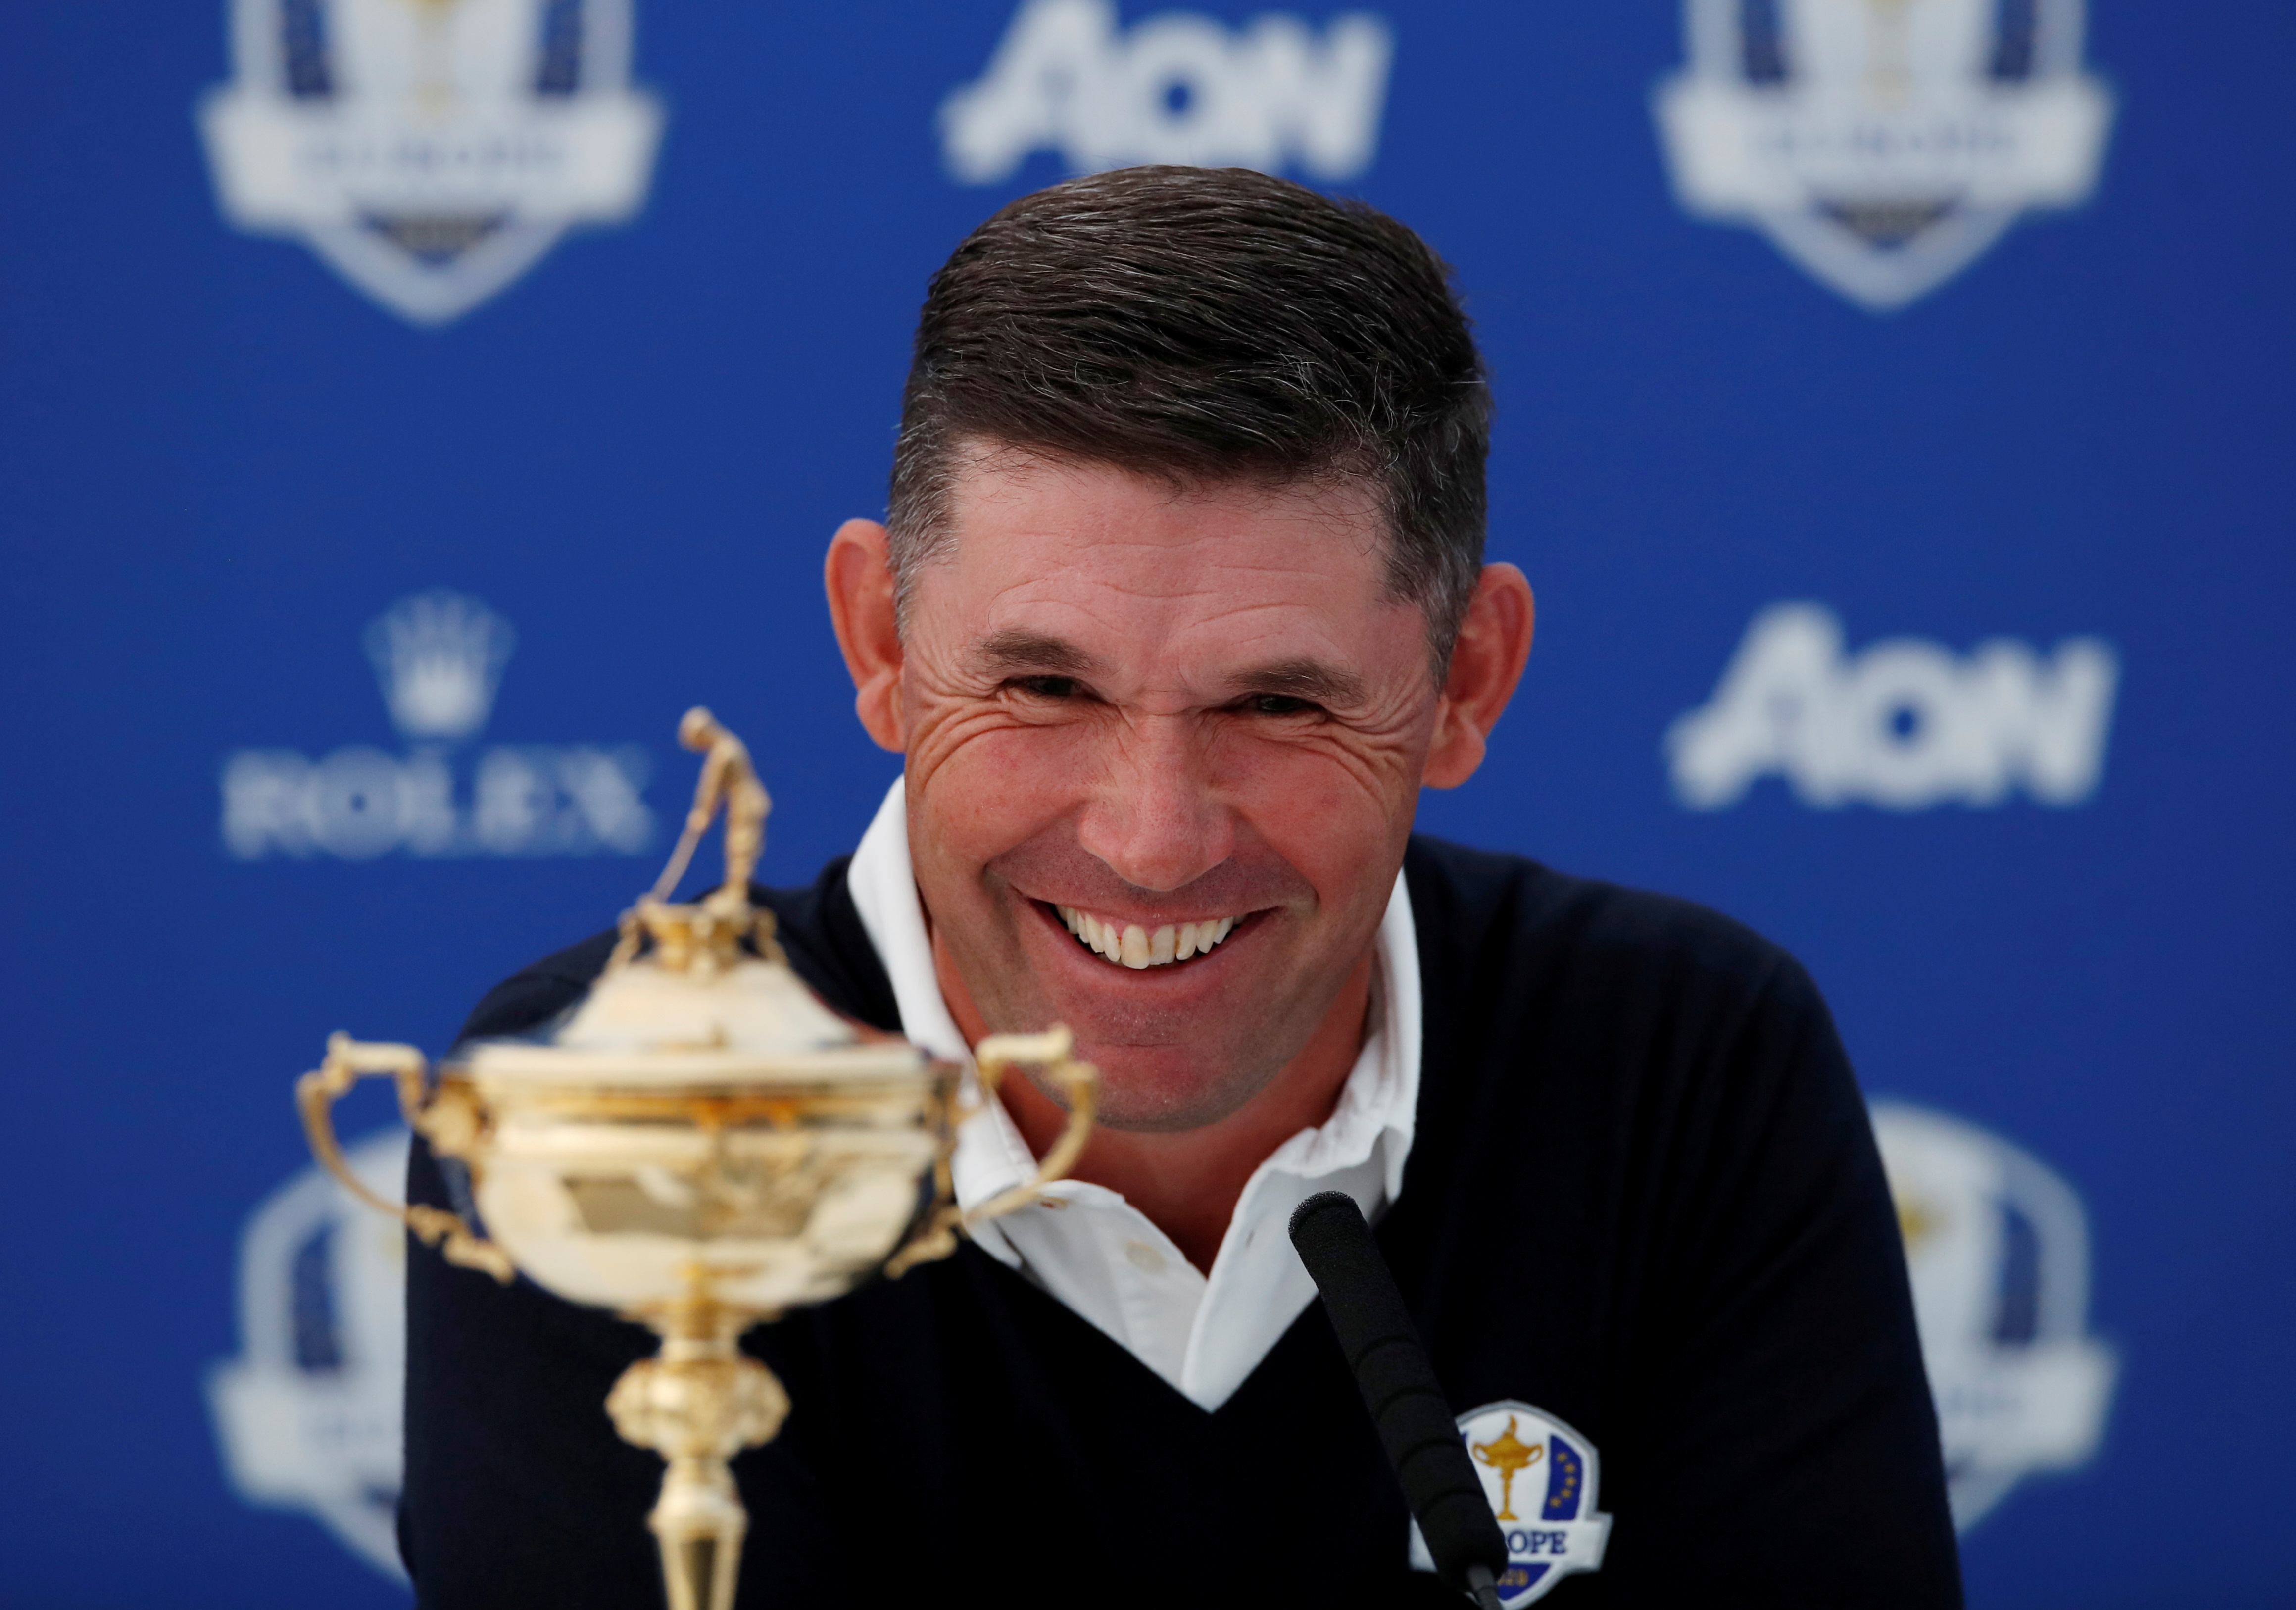 Golf - Ryder Cup - 2020 Ryder Cup Press Conference - Wentworth Golf Club, Virginia Water, Britain - September 18, 2019   The 2020 Ryder Cup captain Padraig Harrington during a press conference   Action Images via Reuters/Paul Childs/File Photo